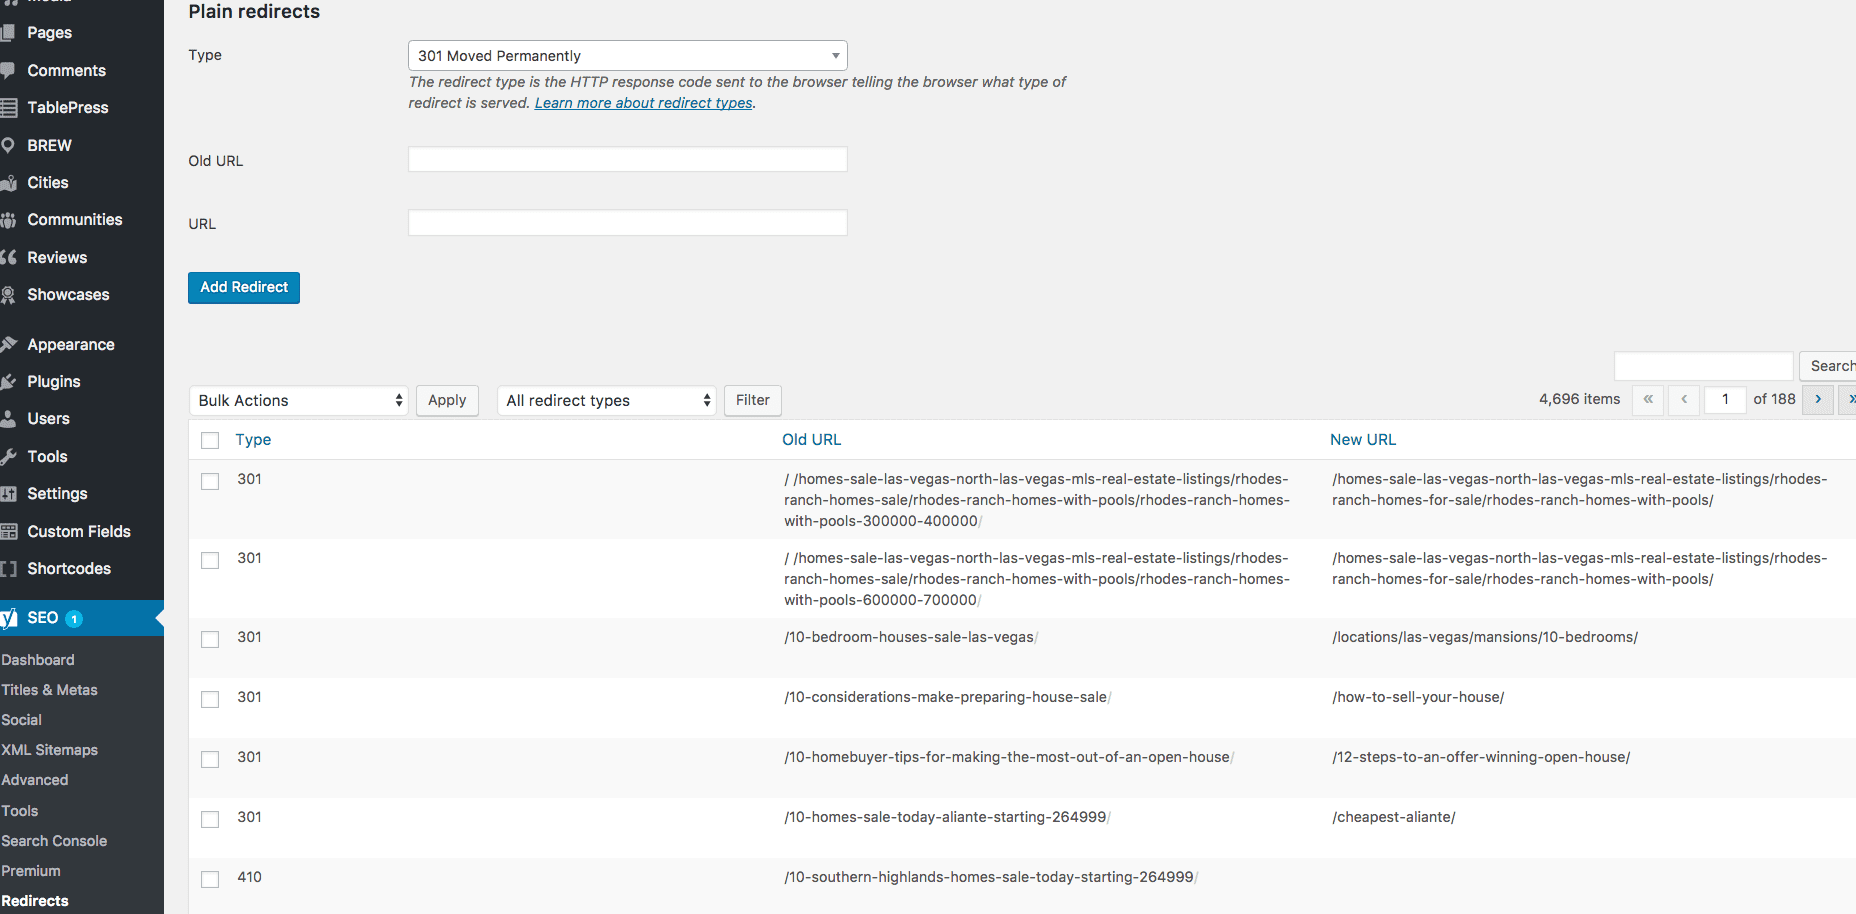 Screenshot showing Yoast SEO's WordPress Plugin Page for Redirects. Displaying a form for redirecty Type, Old URL, and URL, along with a list of existing redirects.